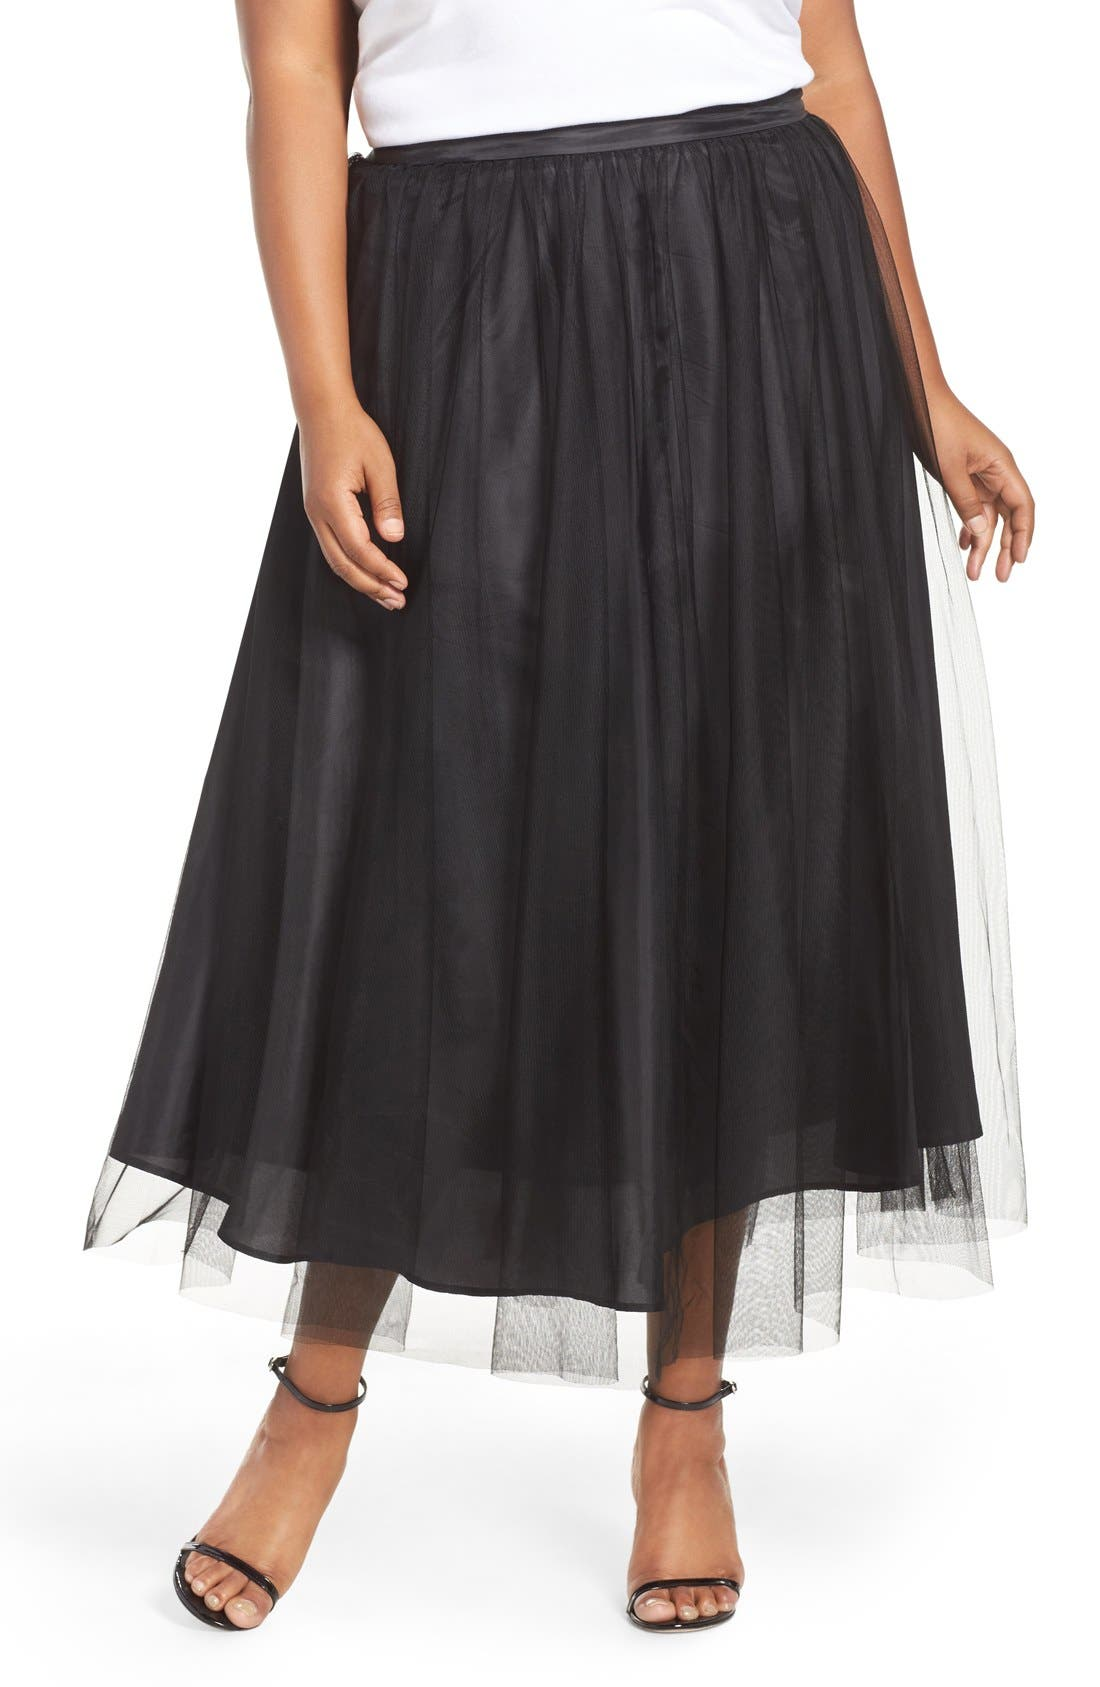 Alternate Image 1 Selected - Alex Evenings Tulle Tea Length Skirt (Plus Size)